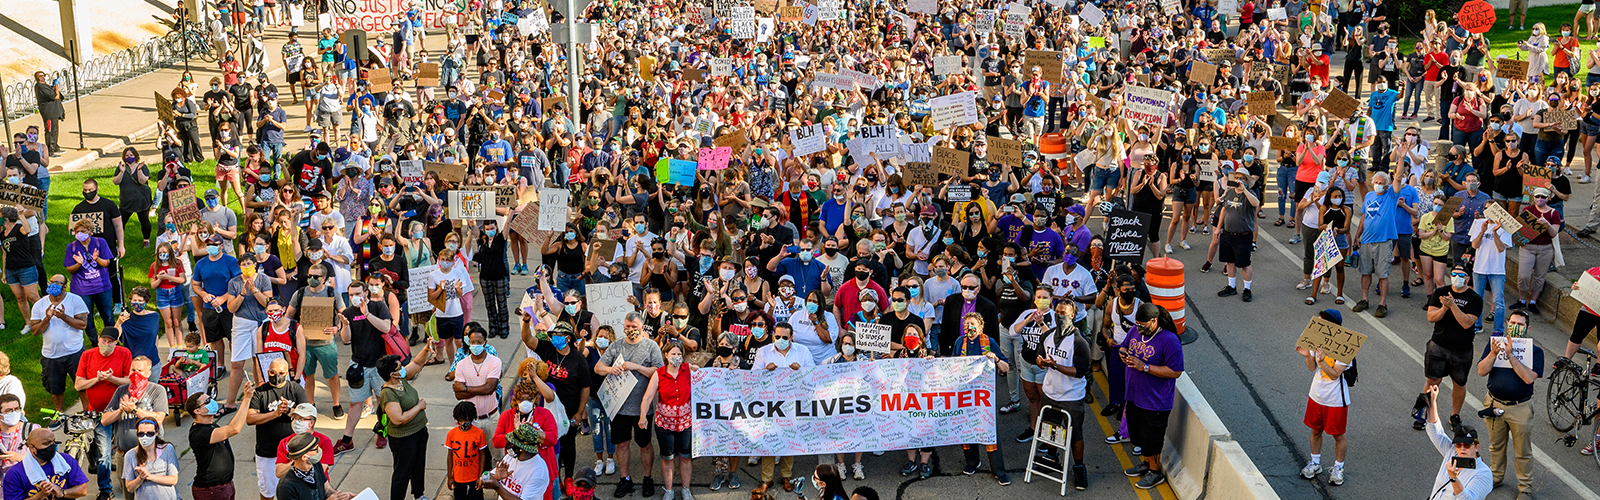 Black Lives Matter Solidarity March